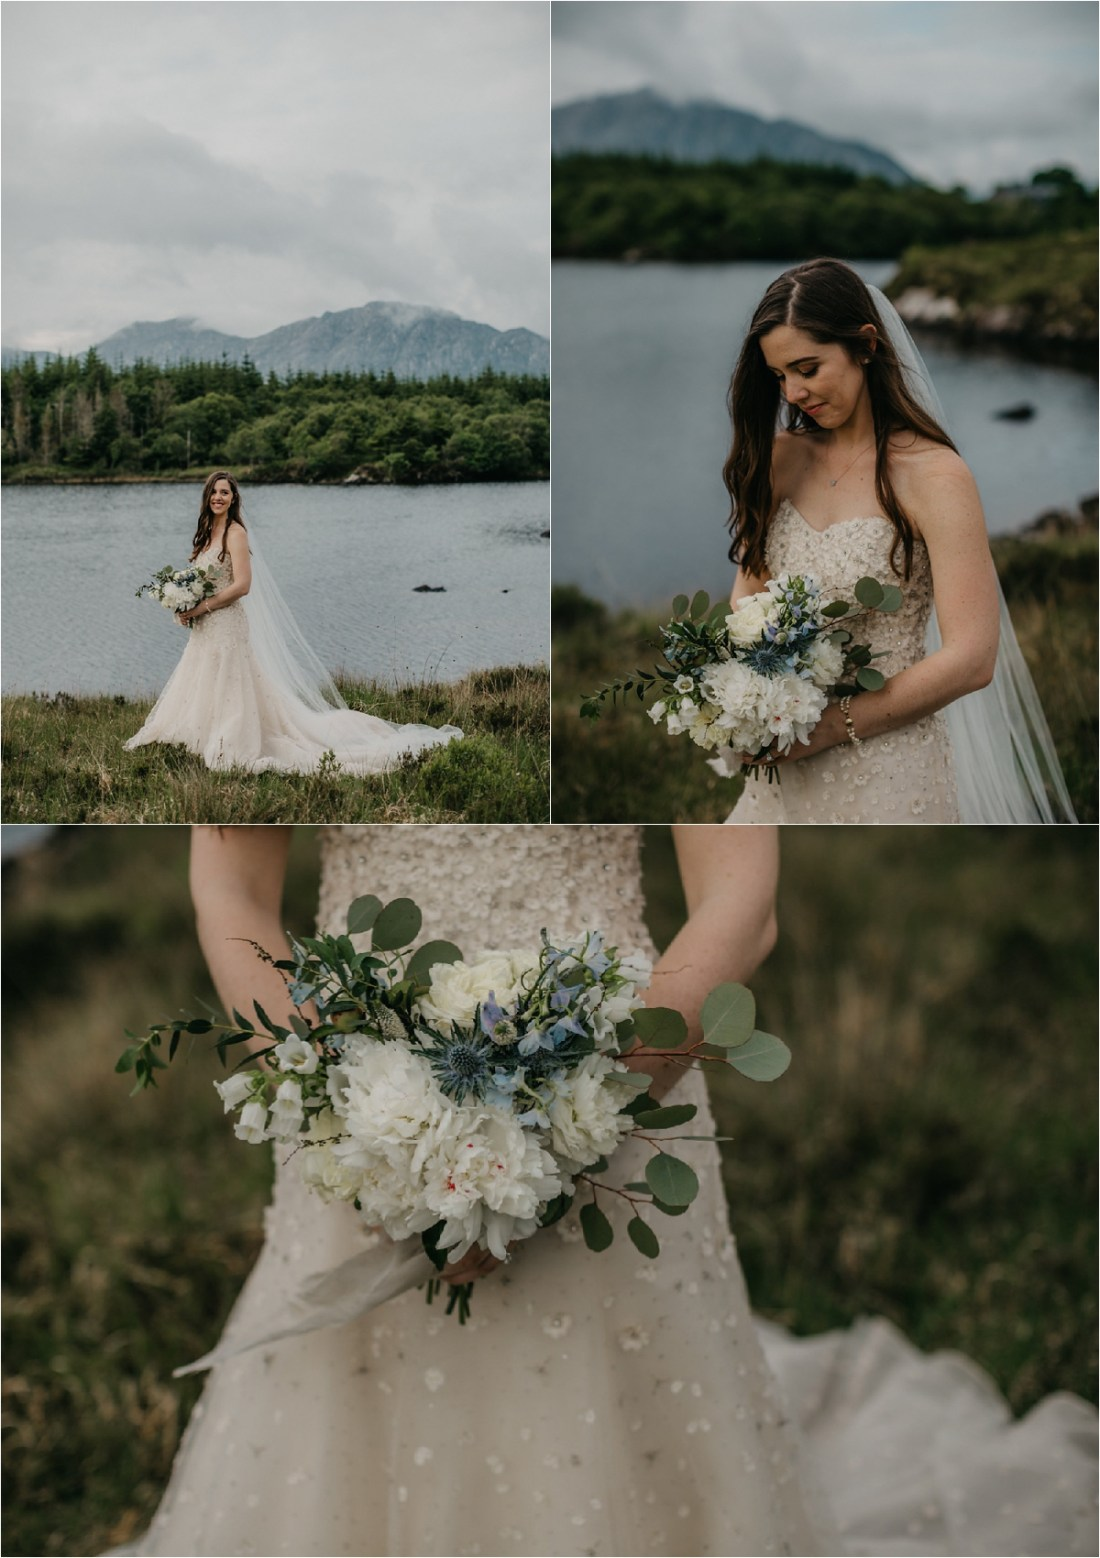 Bridal portraits of Katherine at Ballynahinch Castle by No Other Love Photography